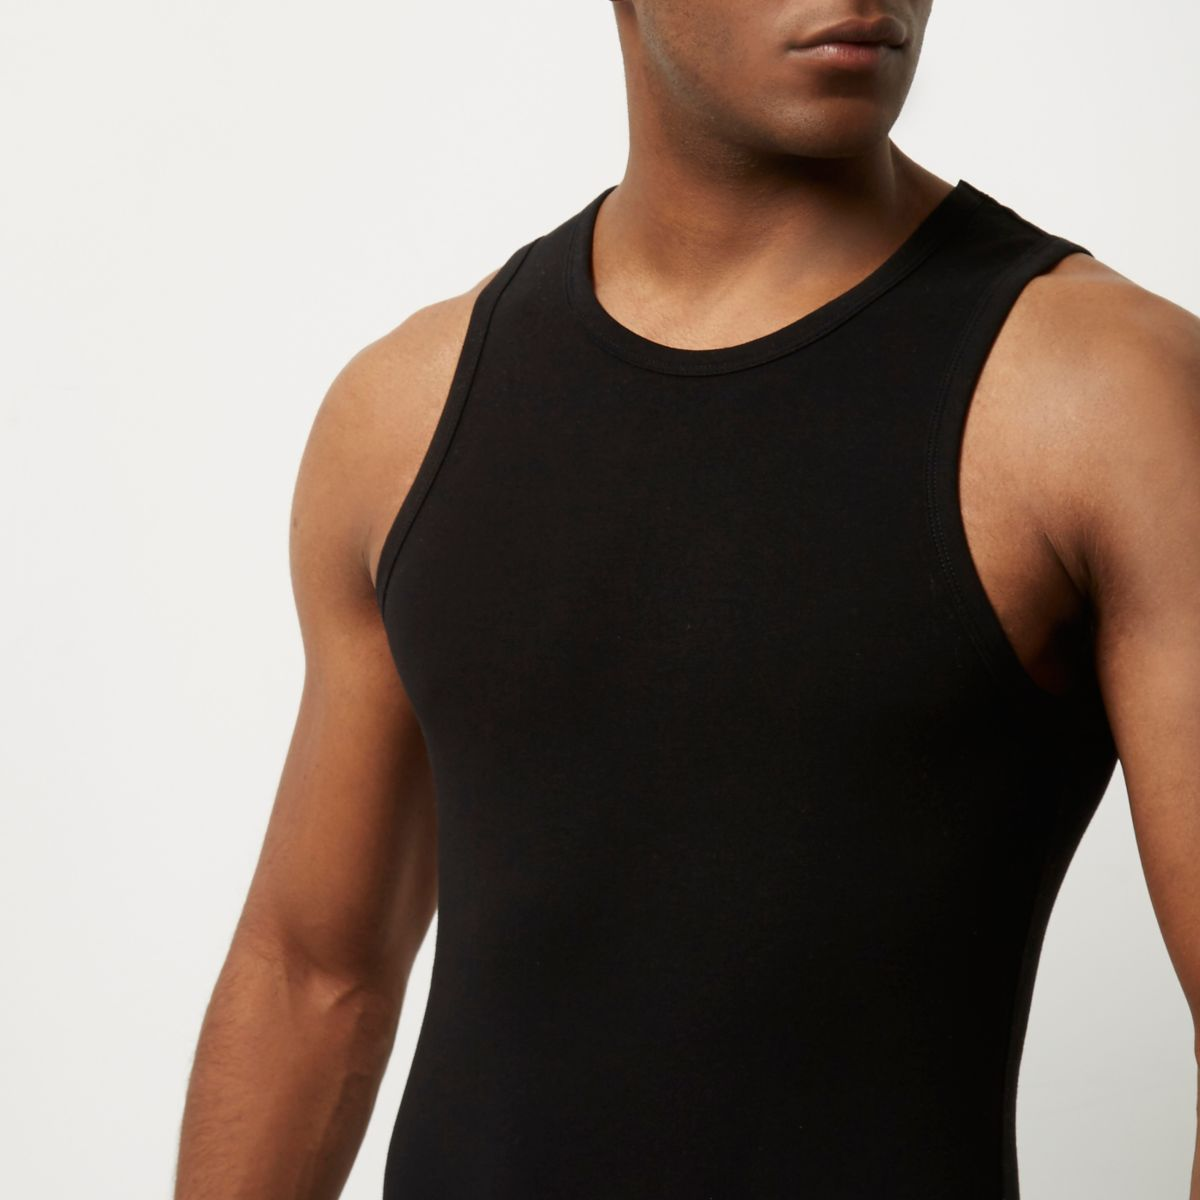 Black muscle fit tank